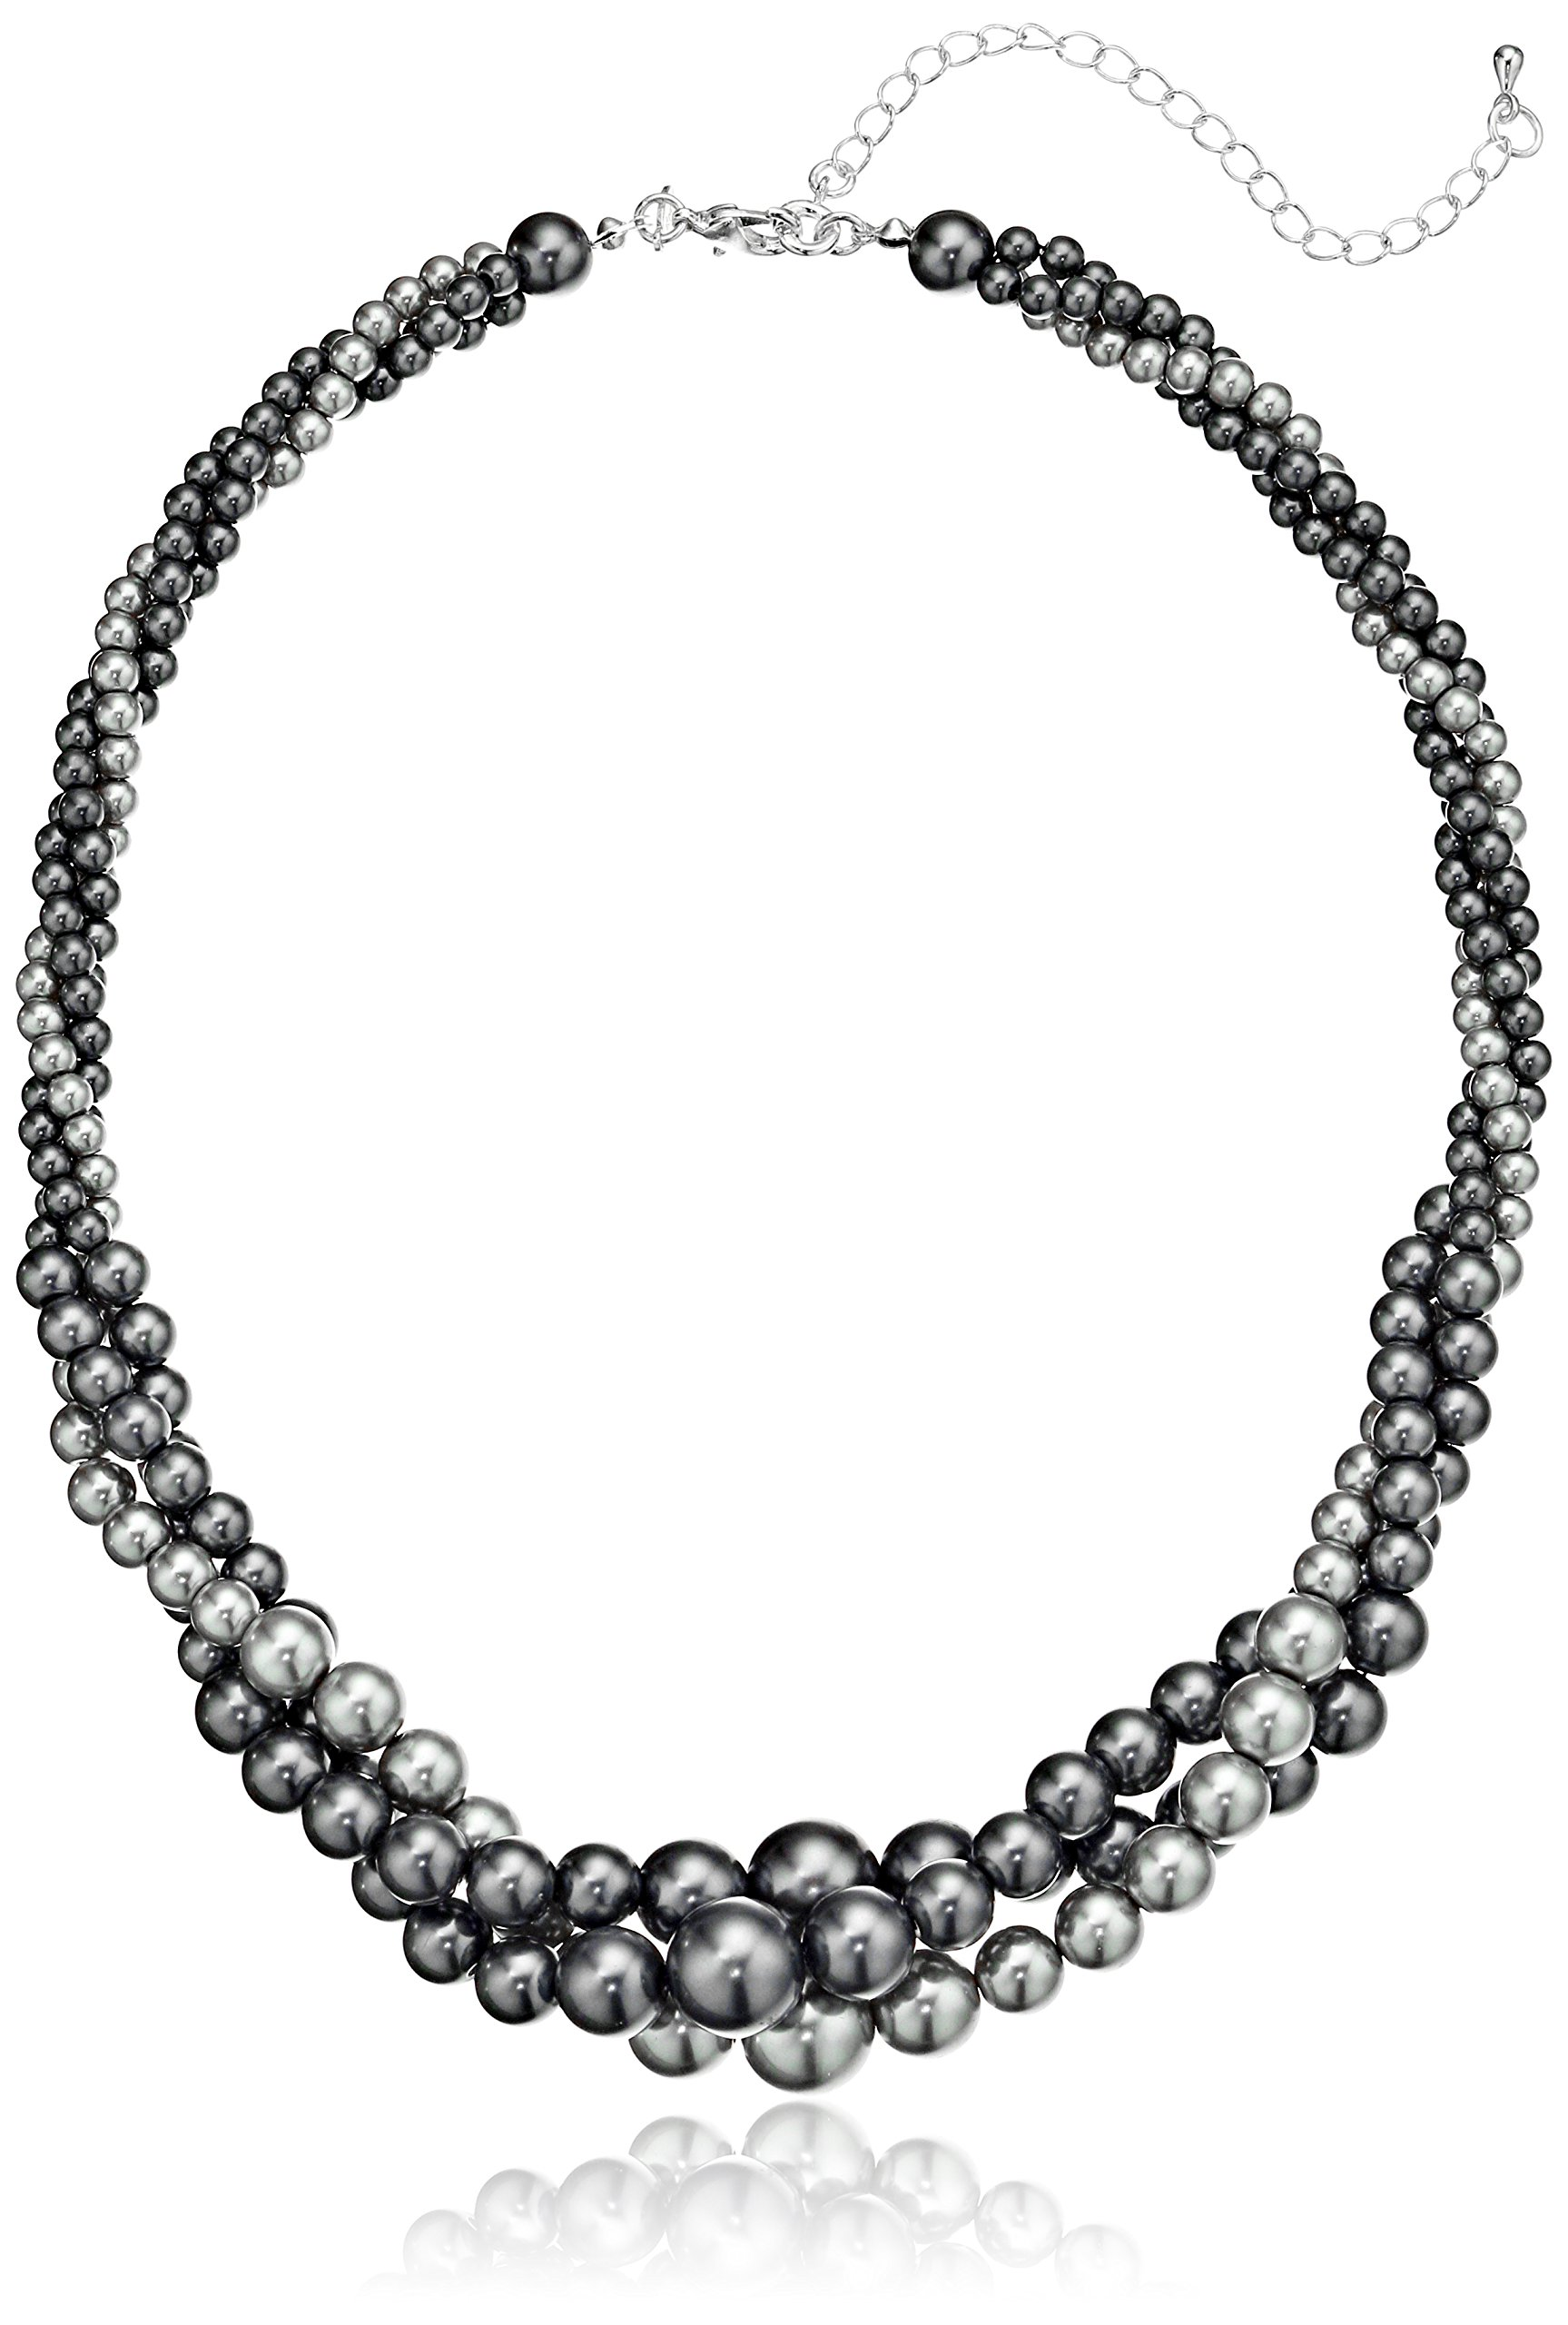 Gold Tone Grey Simulated Three Strand Twisted Pearl Necklace, 18 + 2''